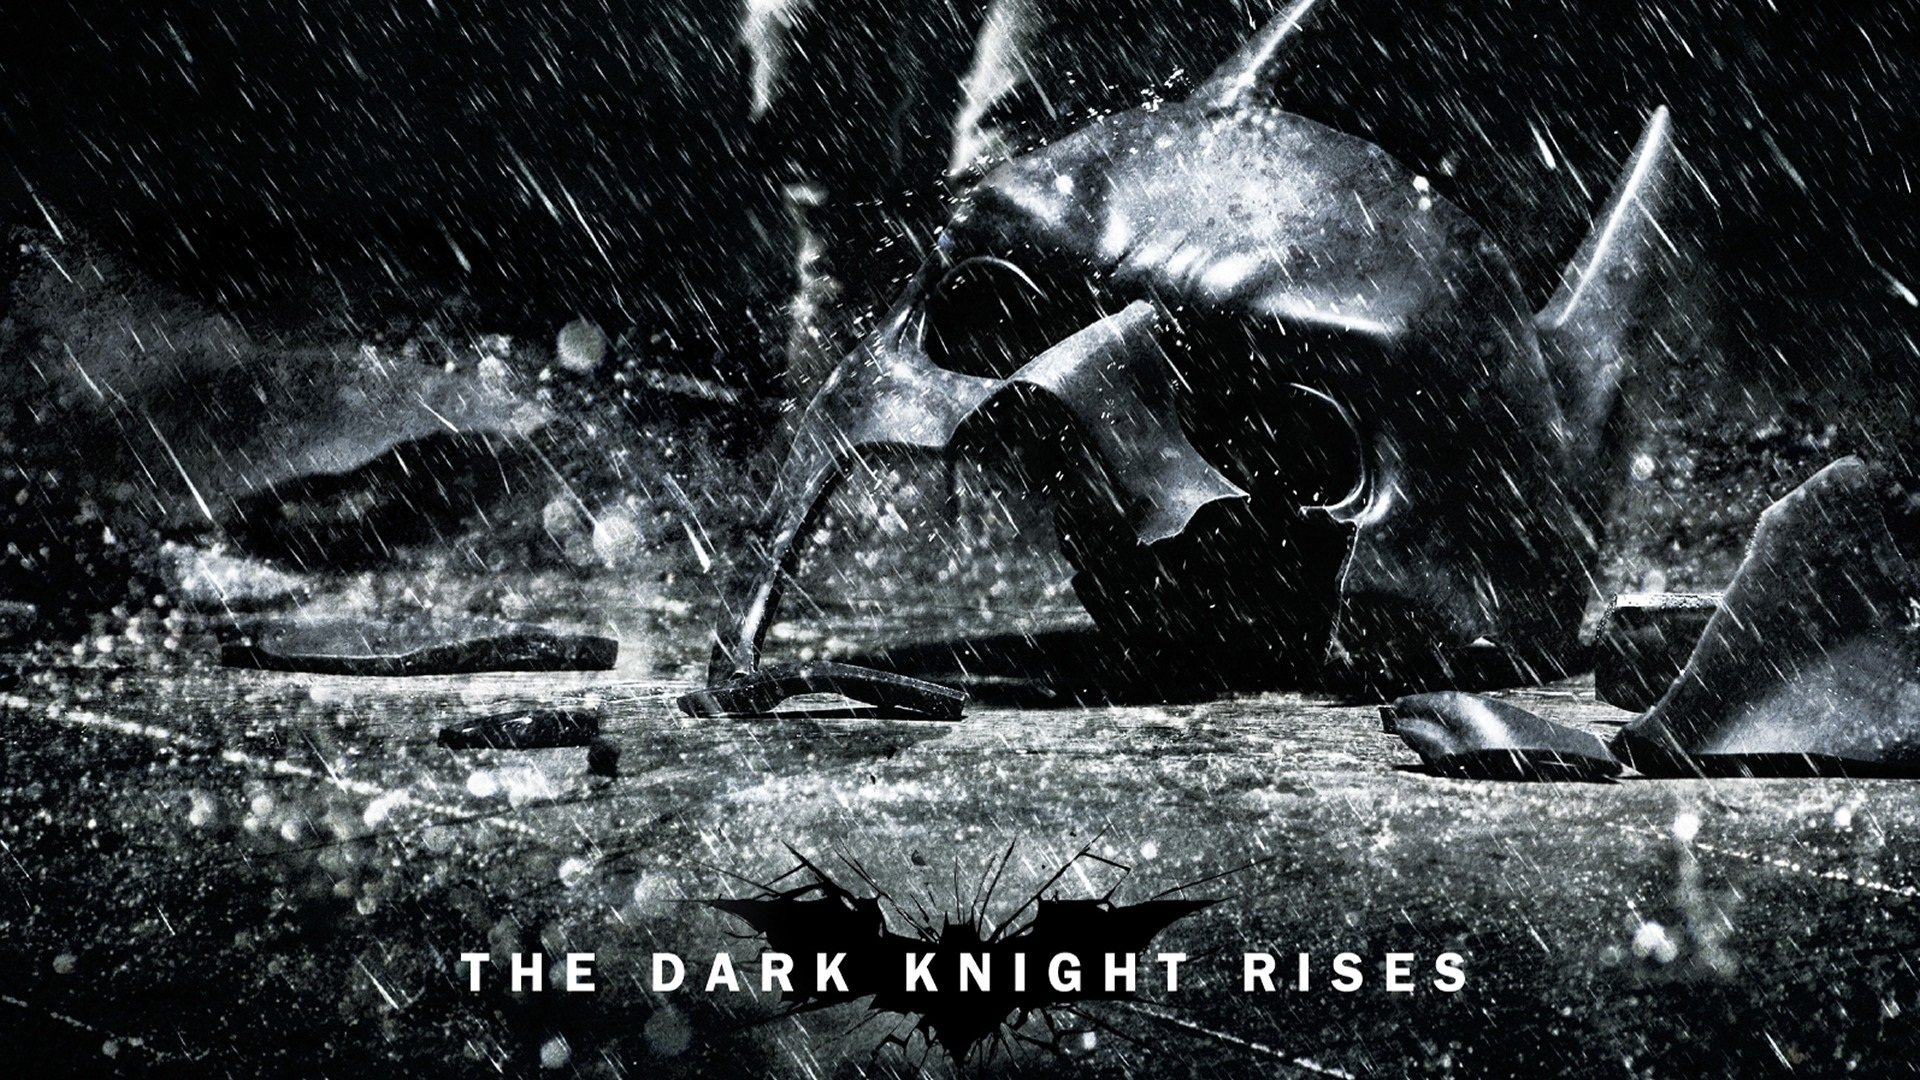 2560x1600 Movie The Dark Knight Rises Darkness 13 21697 4 1 Batman HD Wallpaper